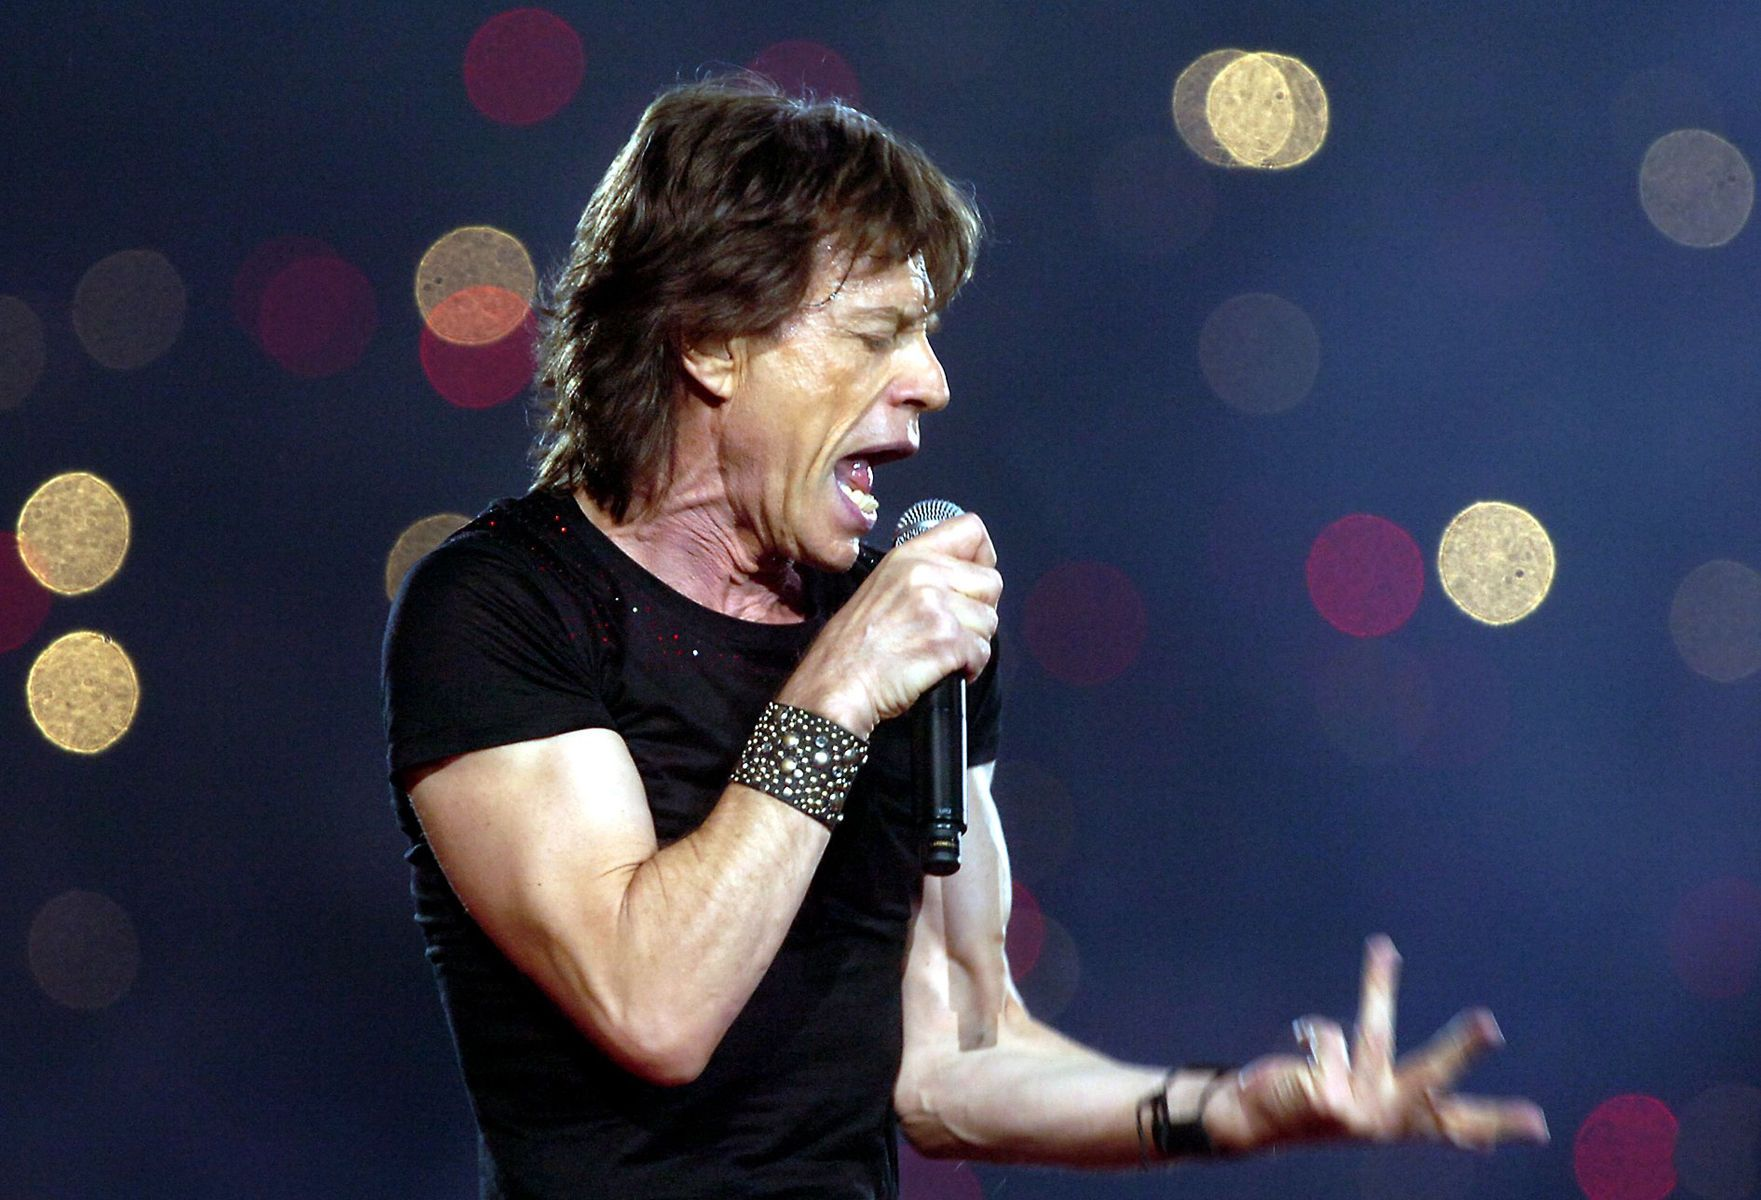 ROLLING STONE MICK JAGER,  FORD FIELD - SUPER BOWL XL HALFTIME SHOW 2005